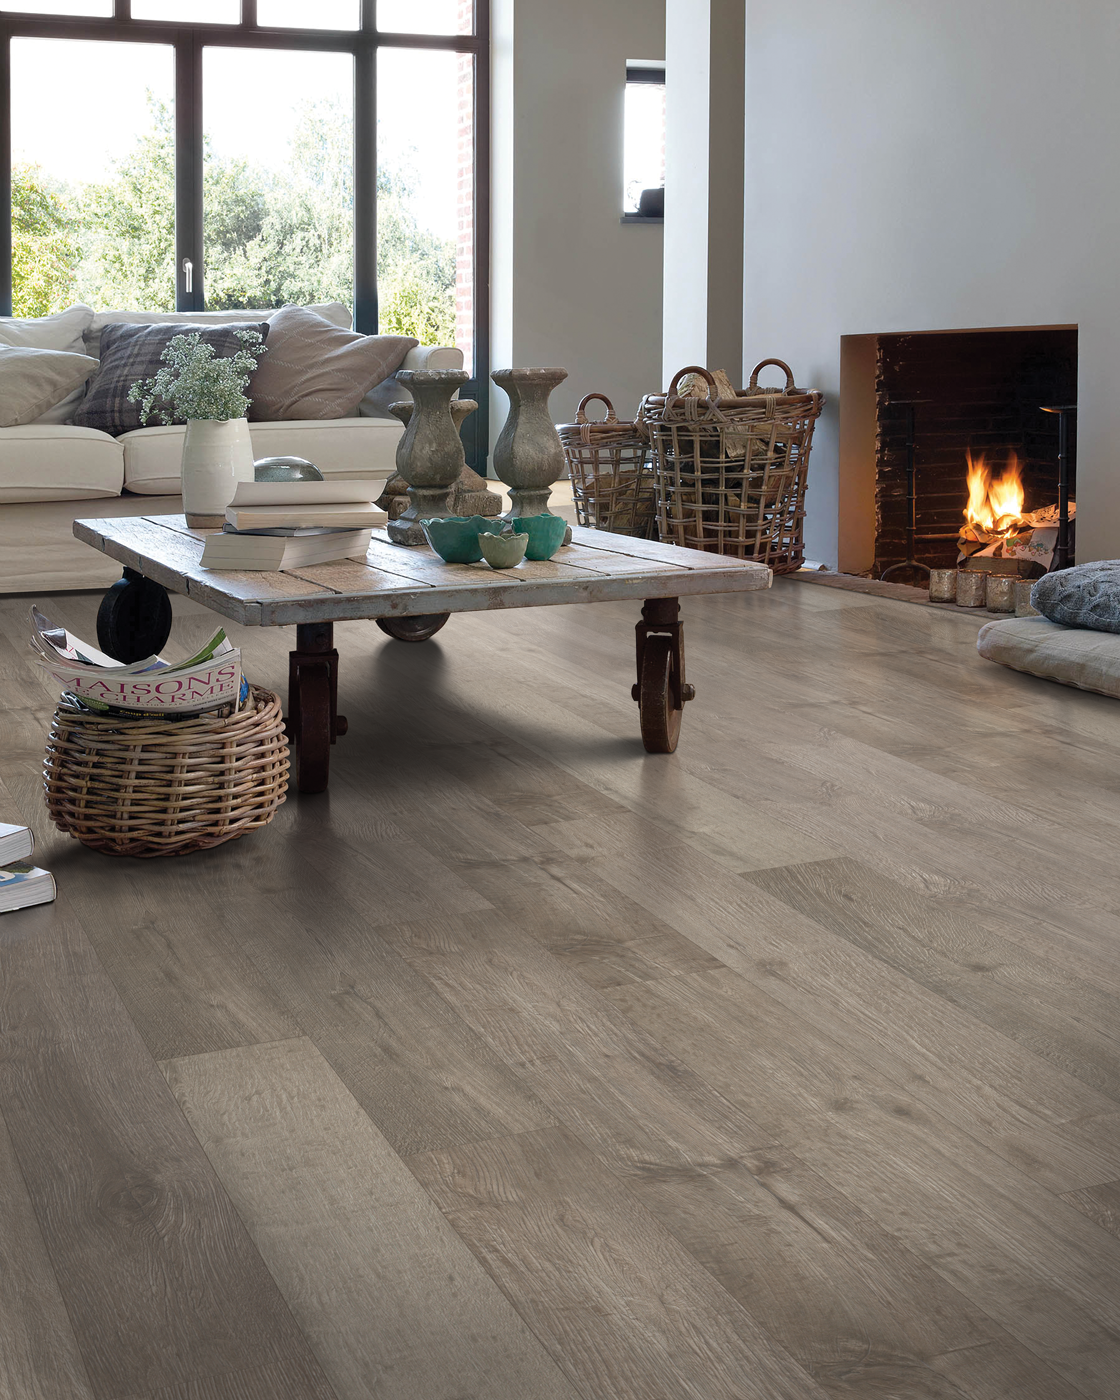 A Plus Keuken Tienen Memoir Oak In 2019 Naturetek Plus Floor Colors Waterproof